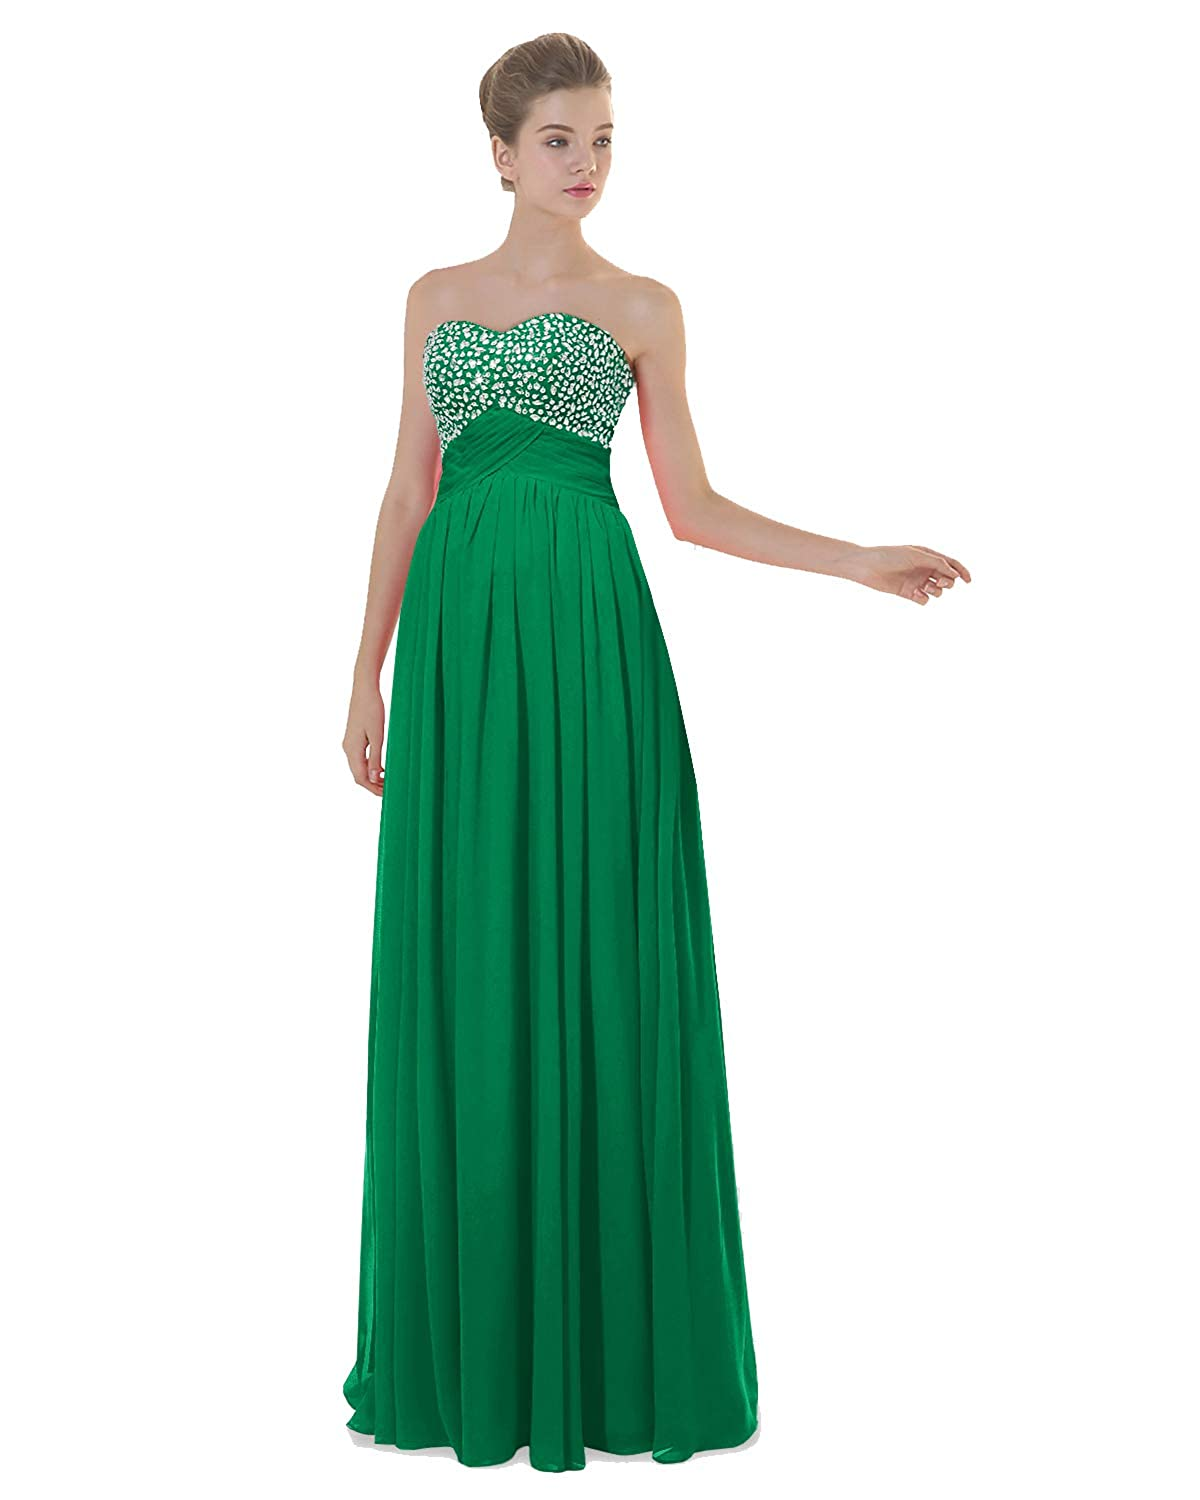 Emerald ANGELWARDROBE Empire Beaded Sweetheart Neck Prom Gowns Long Evening Dresses Party Skirts